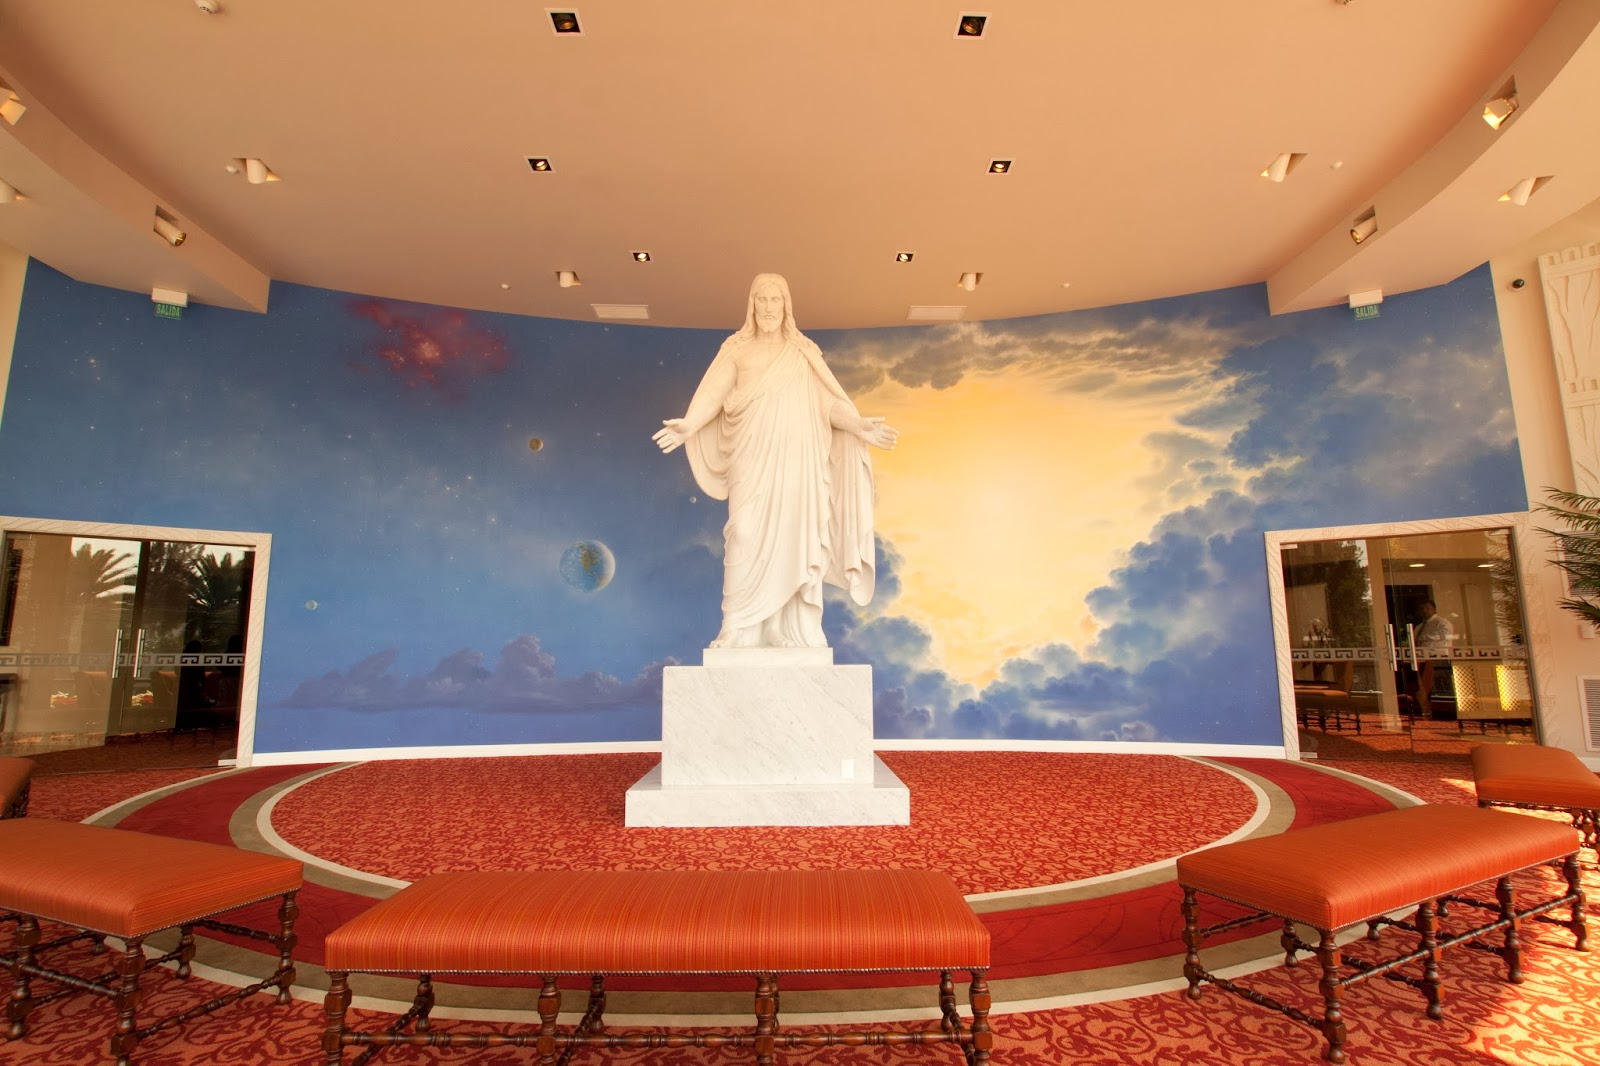 Mexico City L D S Temple Visitors Center - Christus Statue